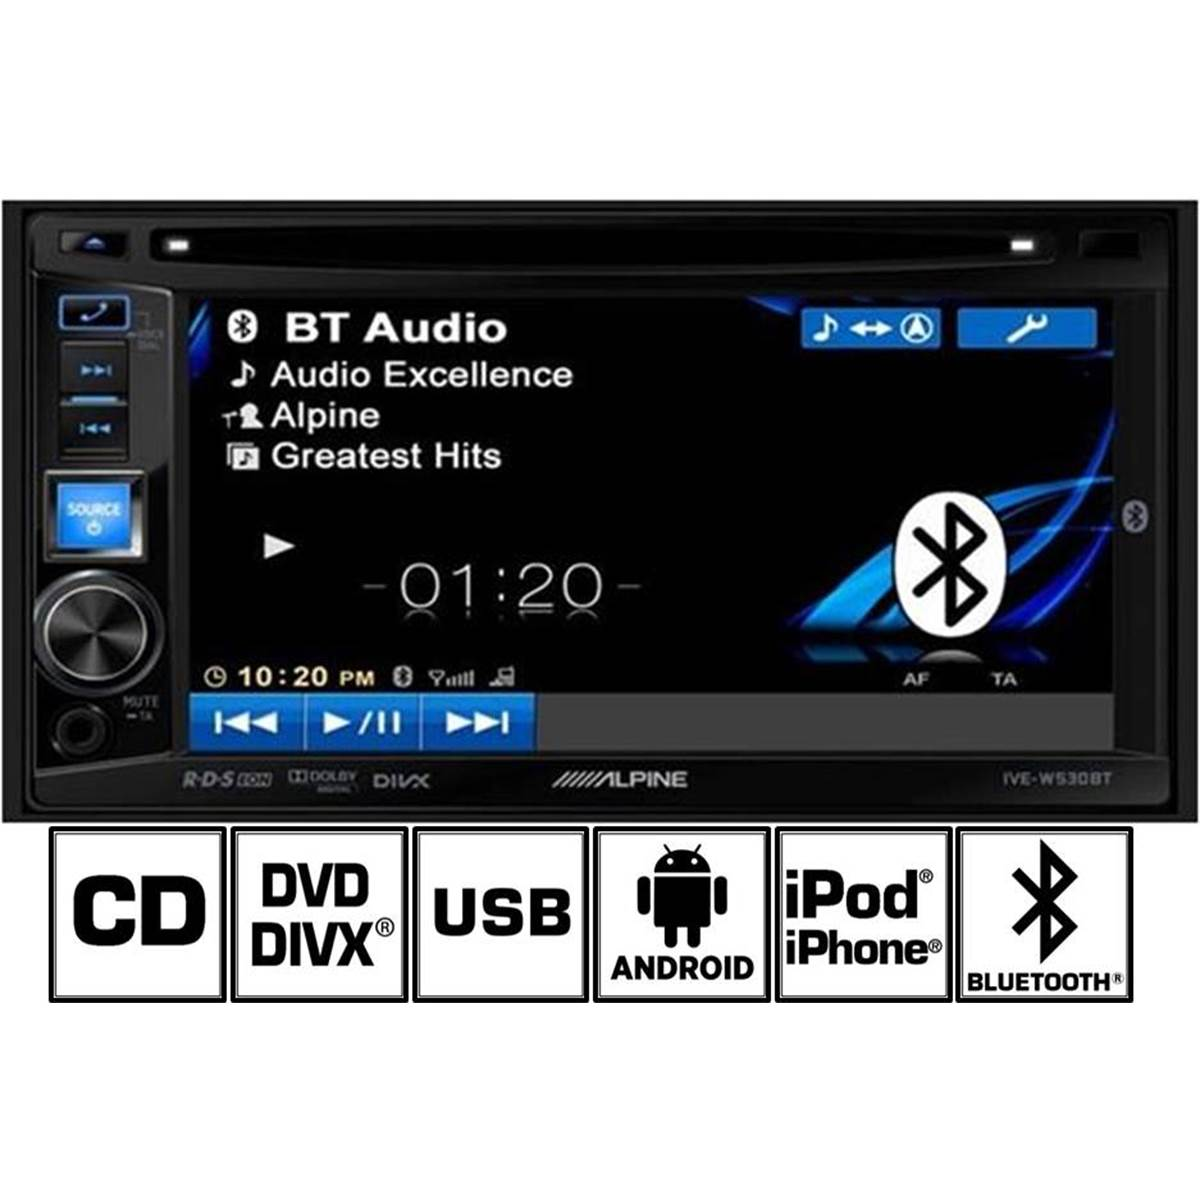 Autoradio Alpine IVE-W530BT